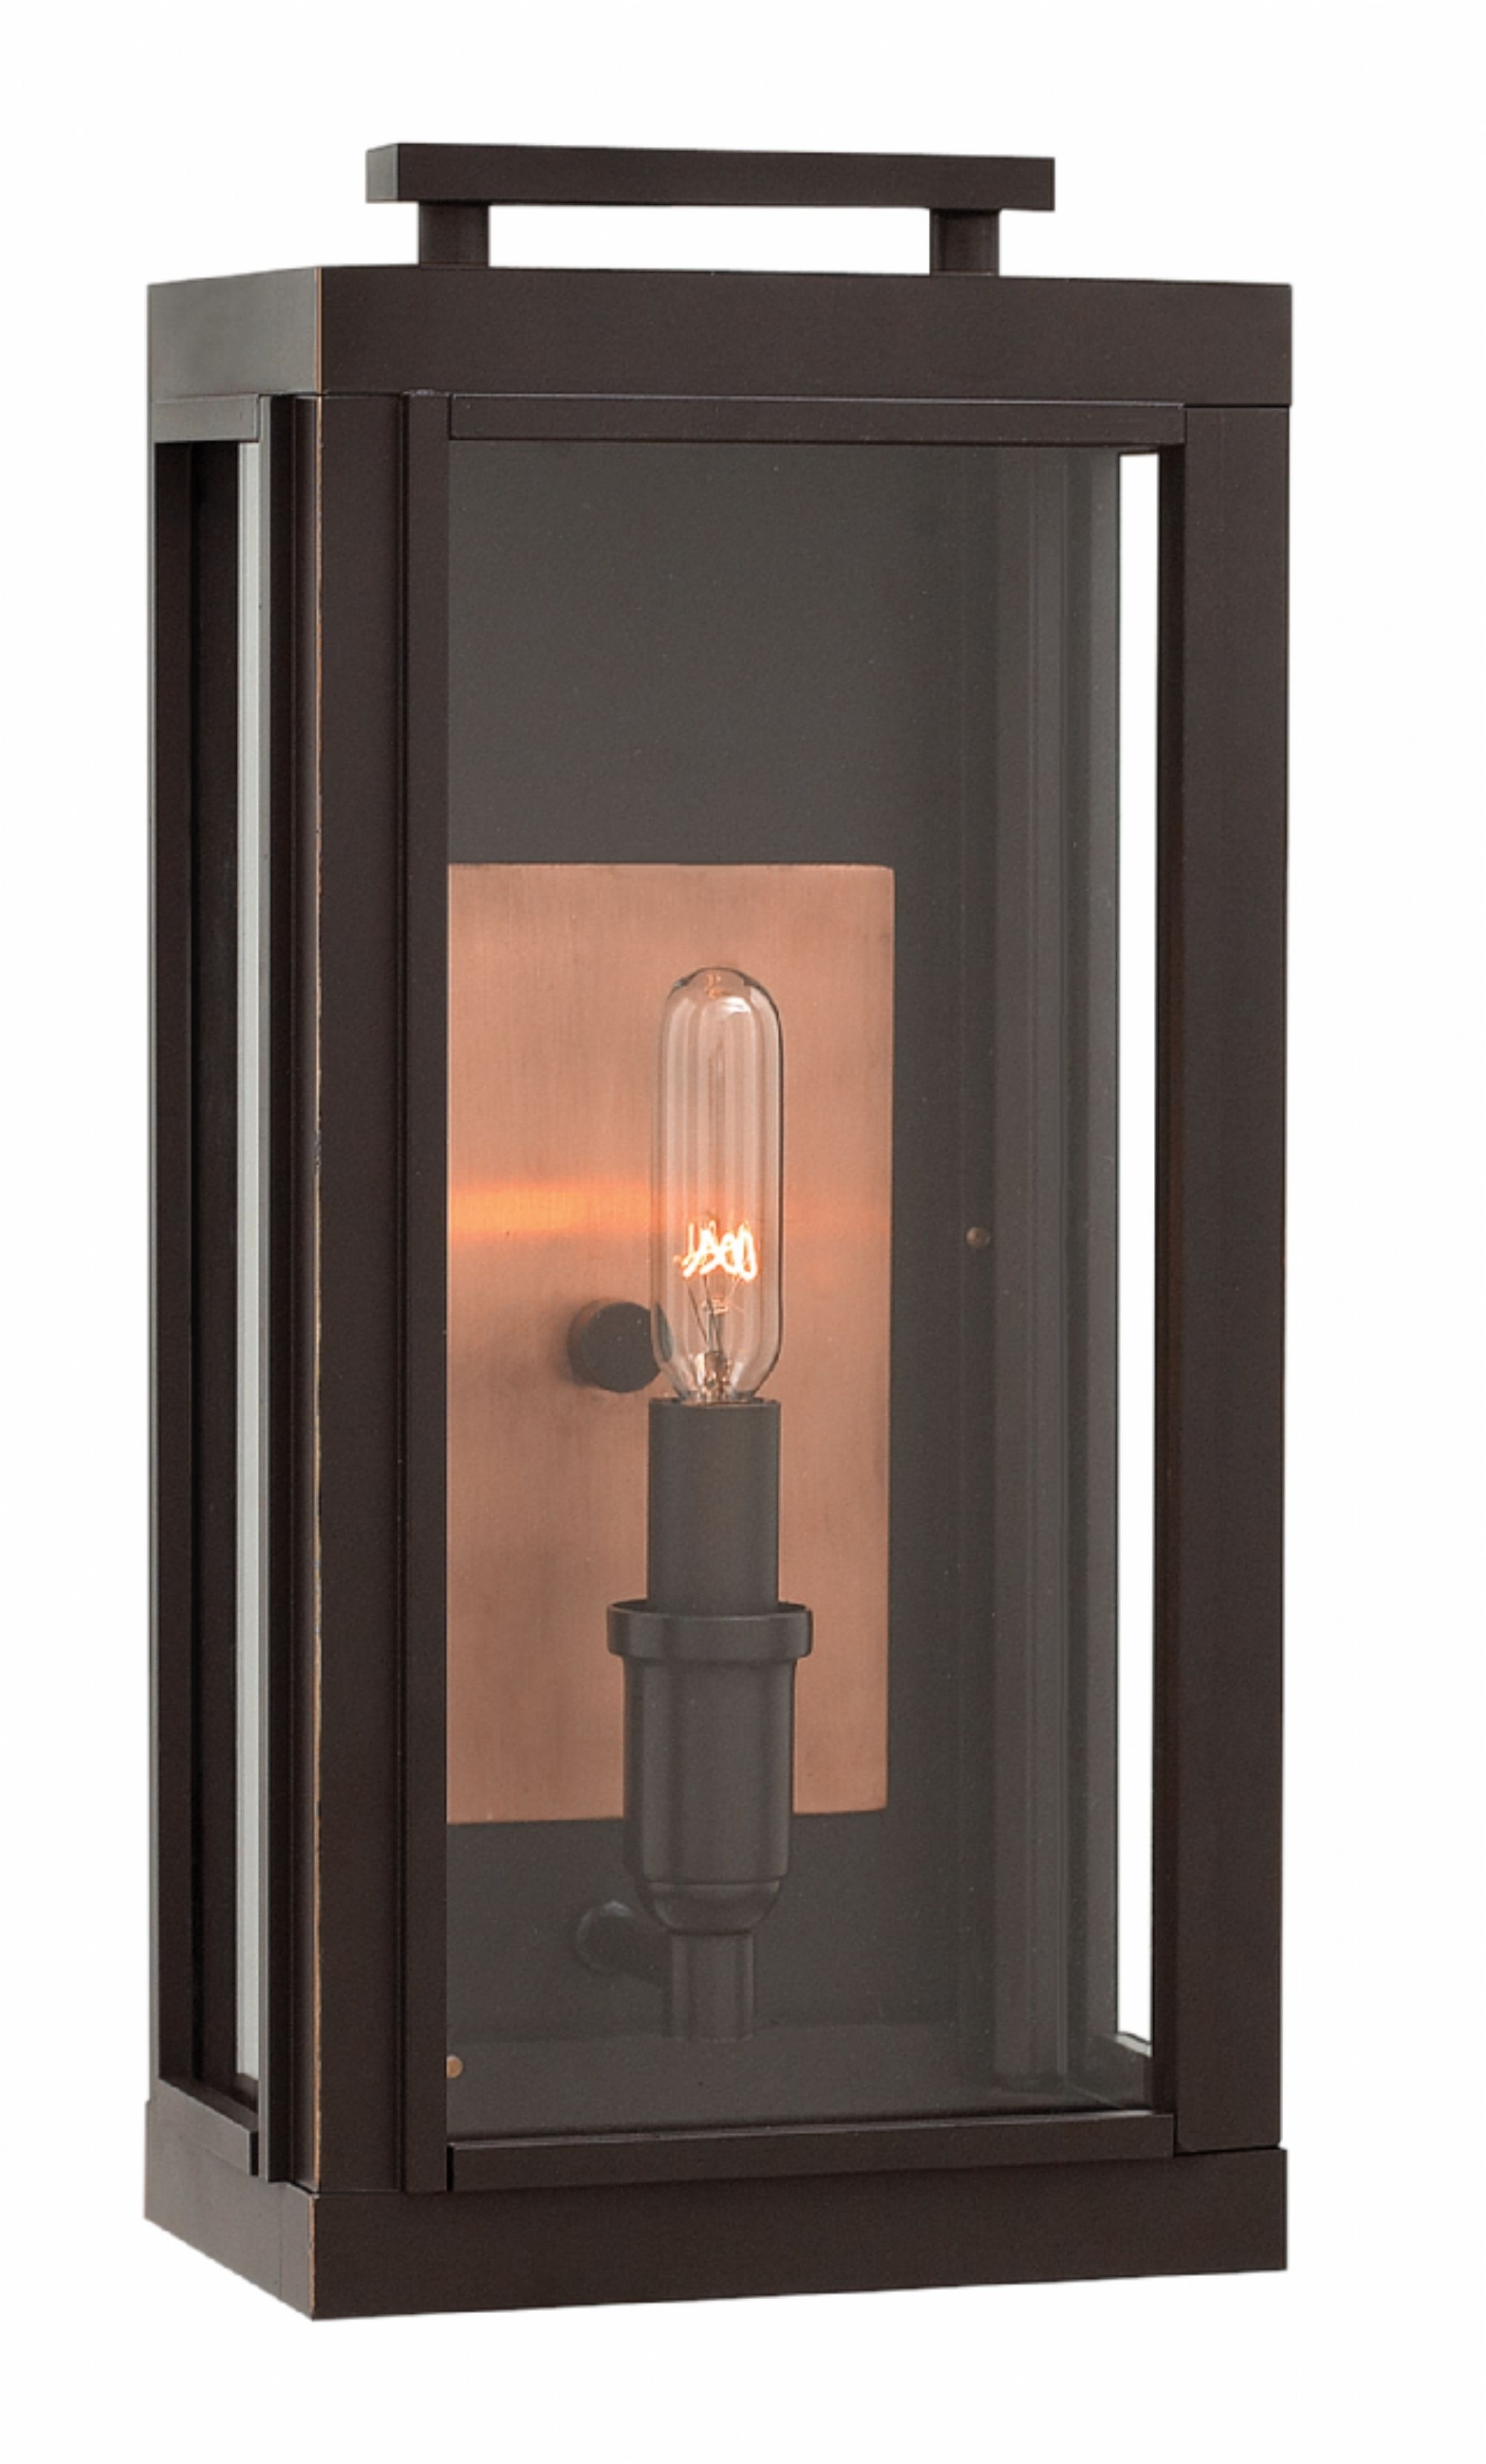 Double Wall Mount Hinkley Lighting Within Fashionable Oil Rubbed Bronze Sutcliffe > Exterior Wall Mount (View 6 of 20)